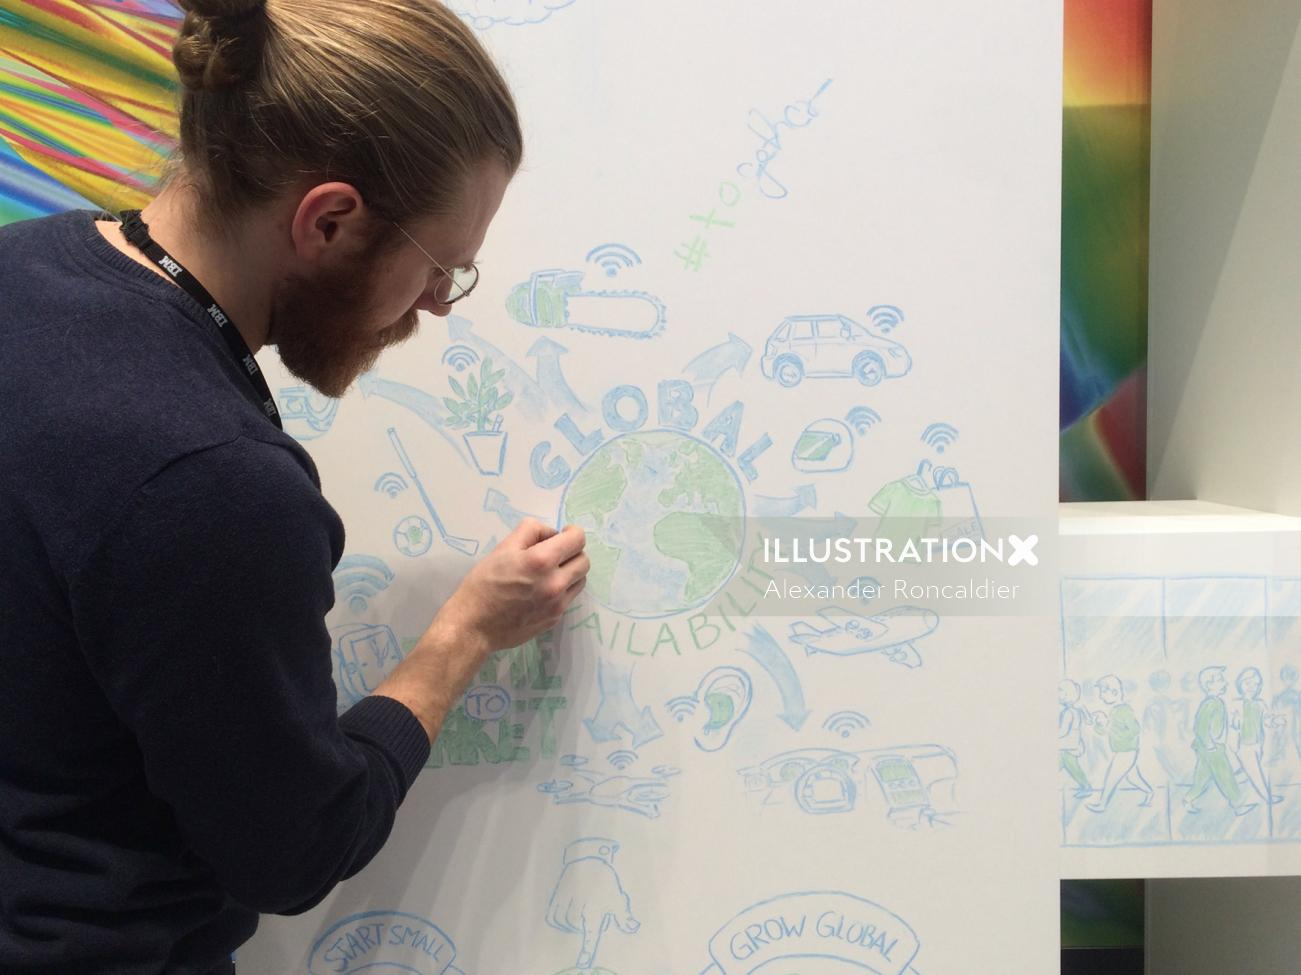 Live drawing illustration by Alexander Roncaldier